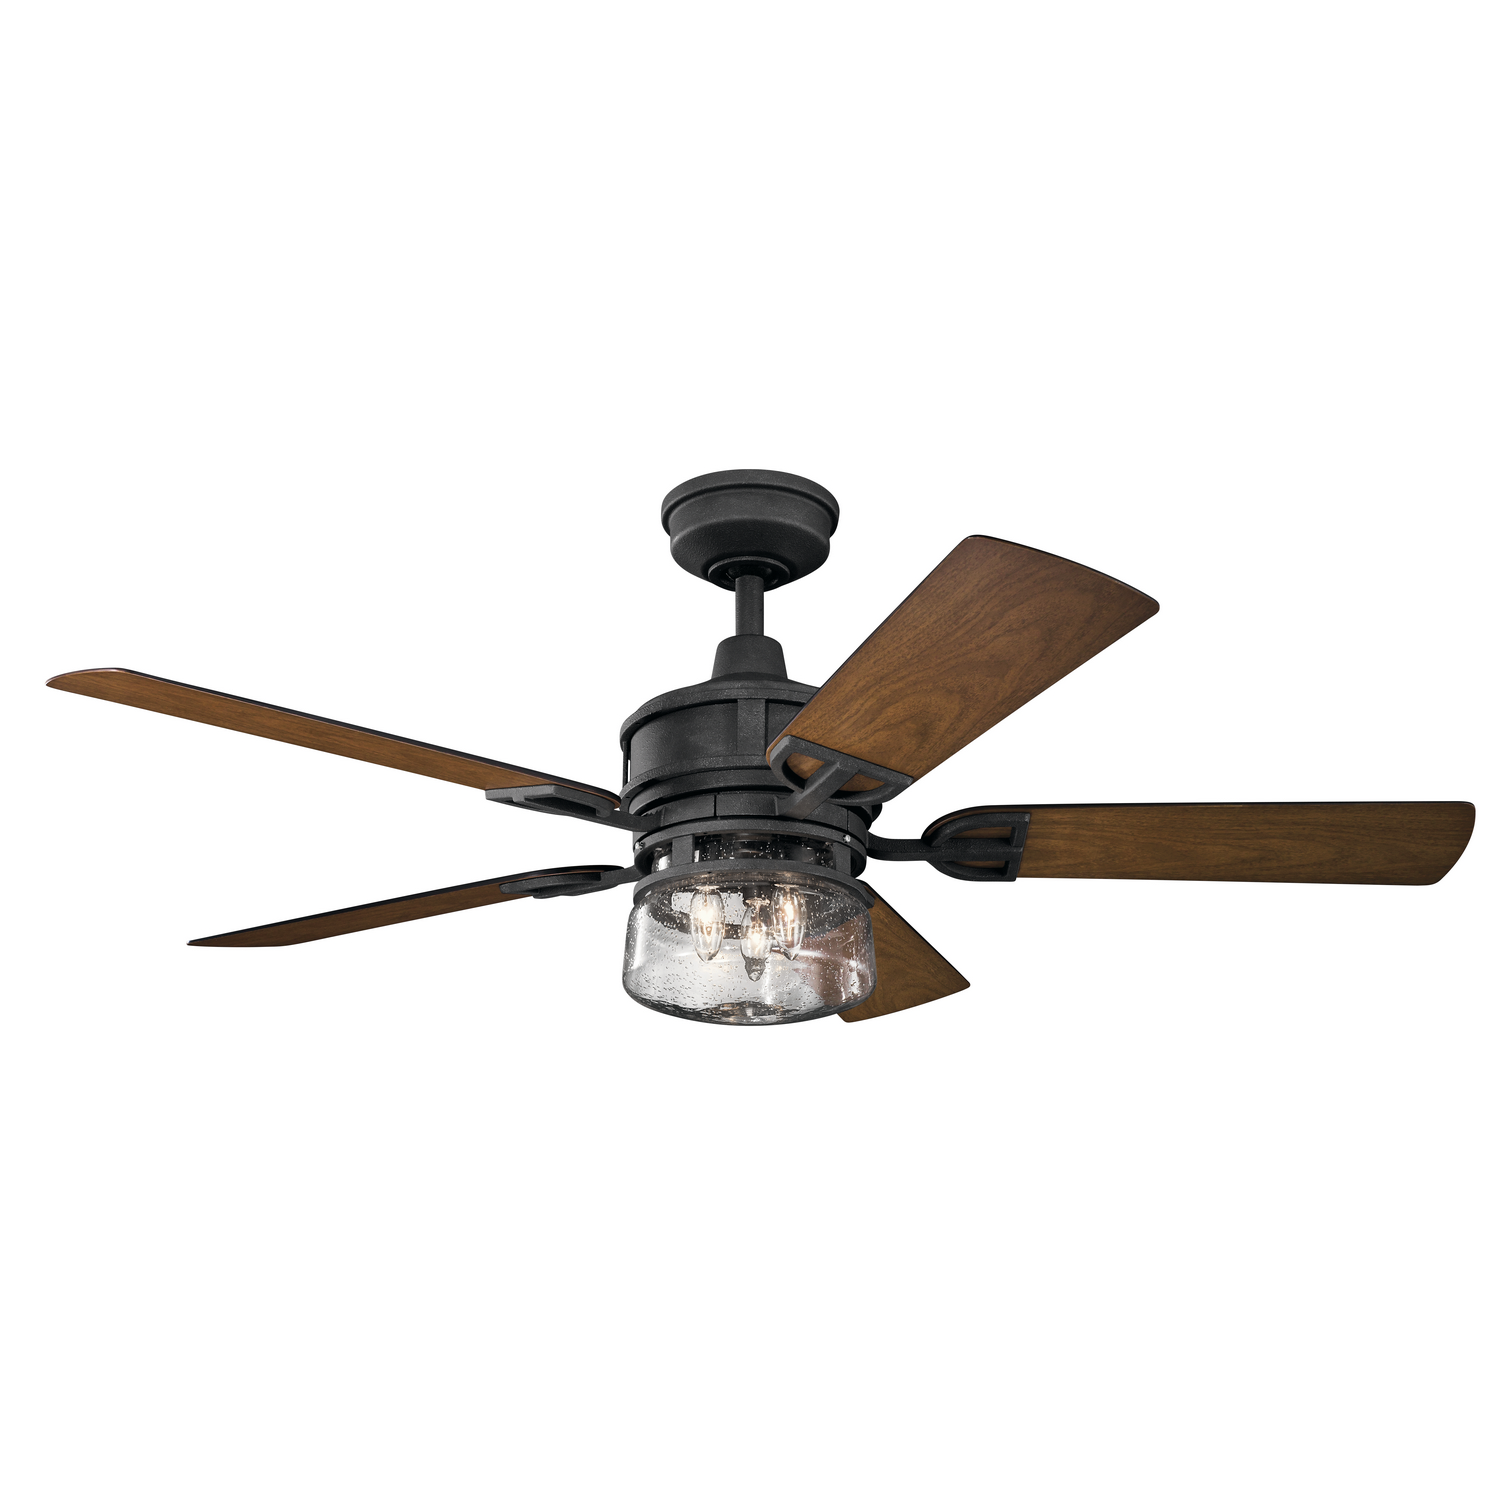 52 inchCeiling Fan from the Patio collection by Kichler 310139DBK